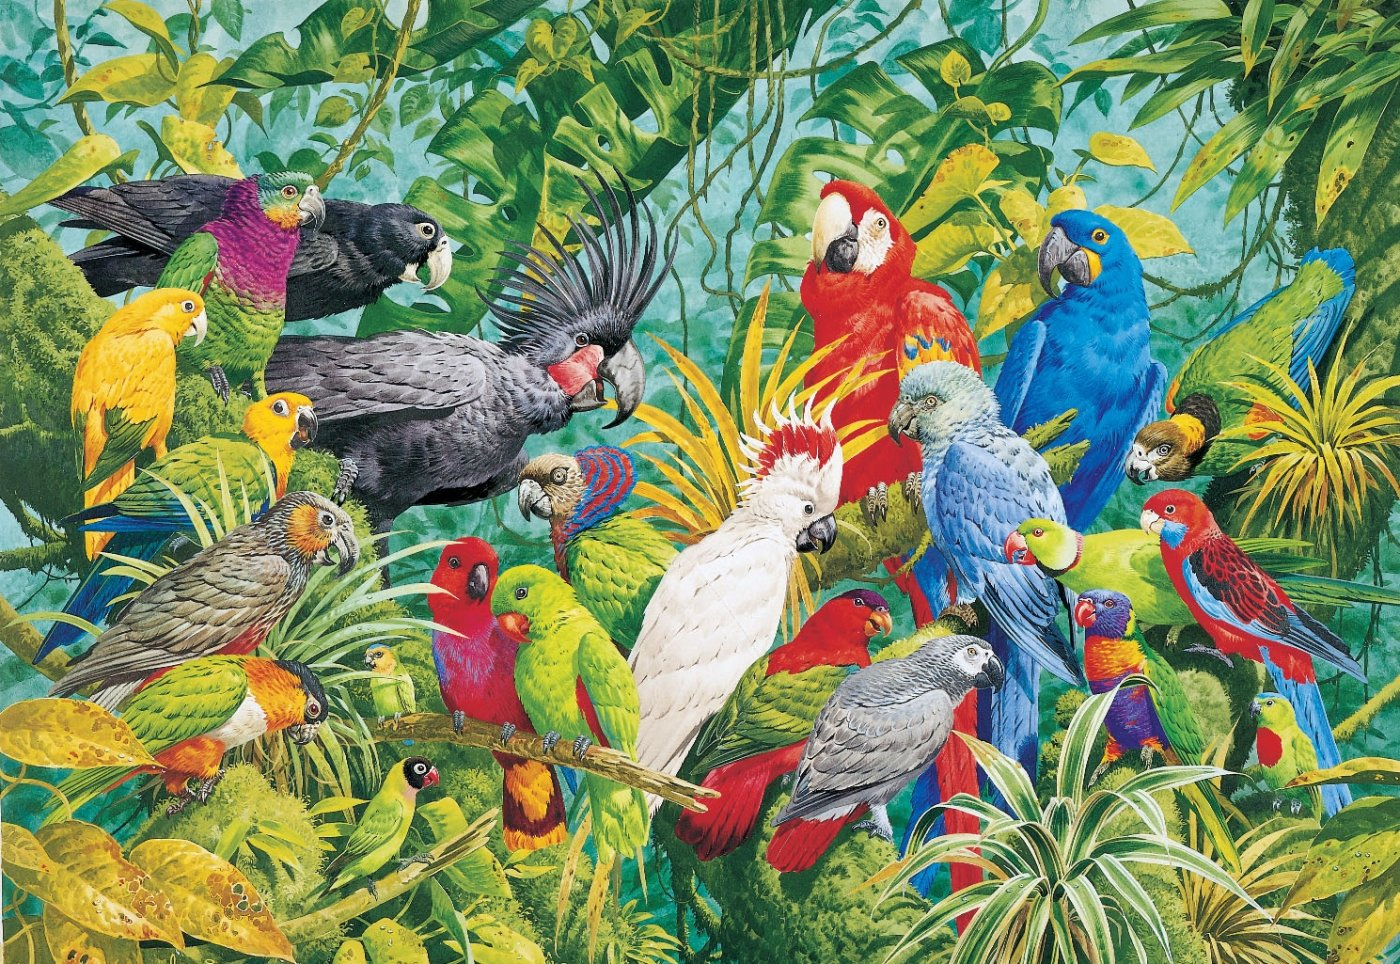 Colorful Birds of a Rainforest